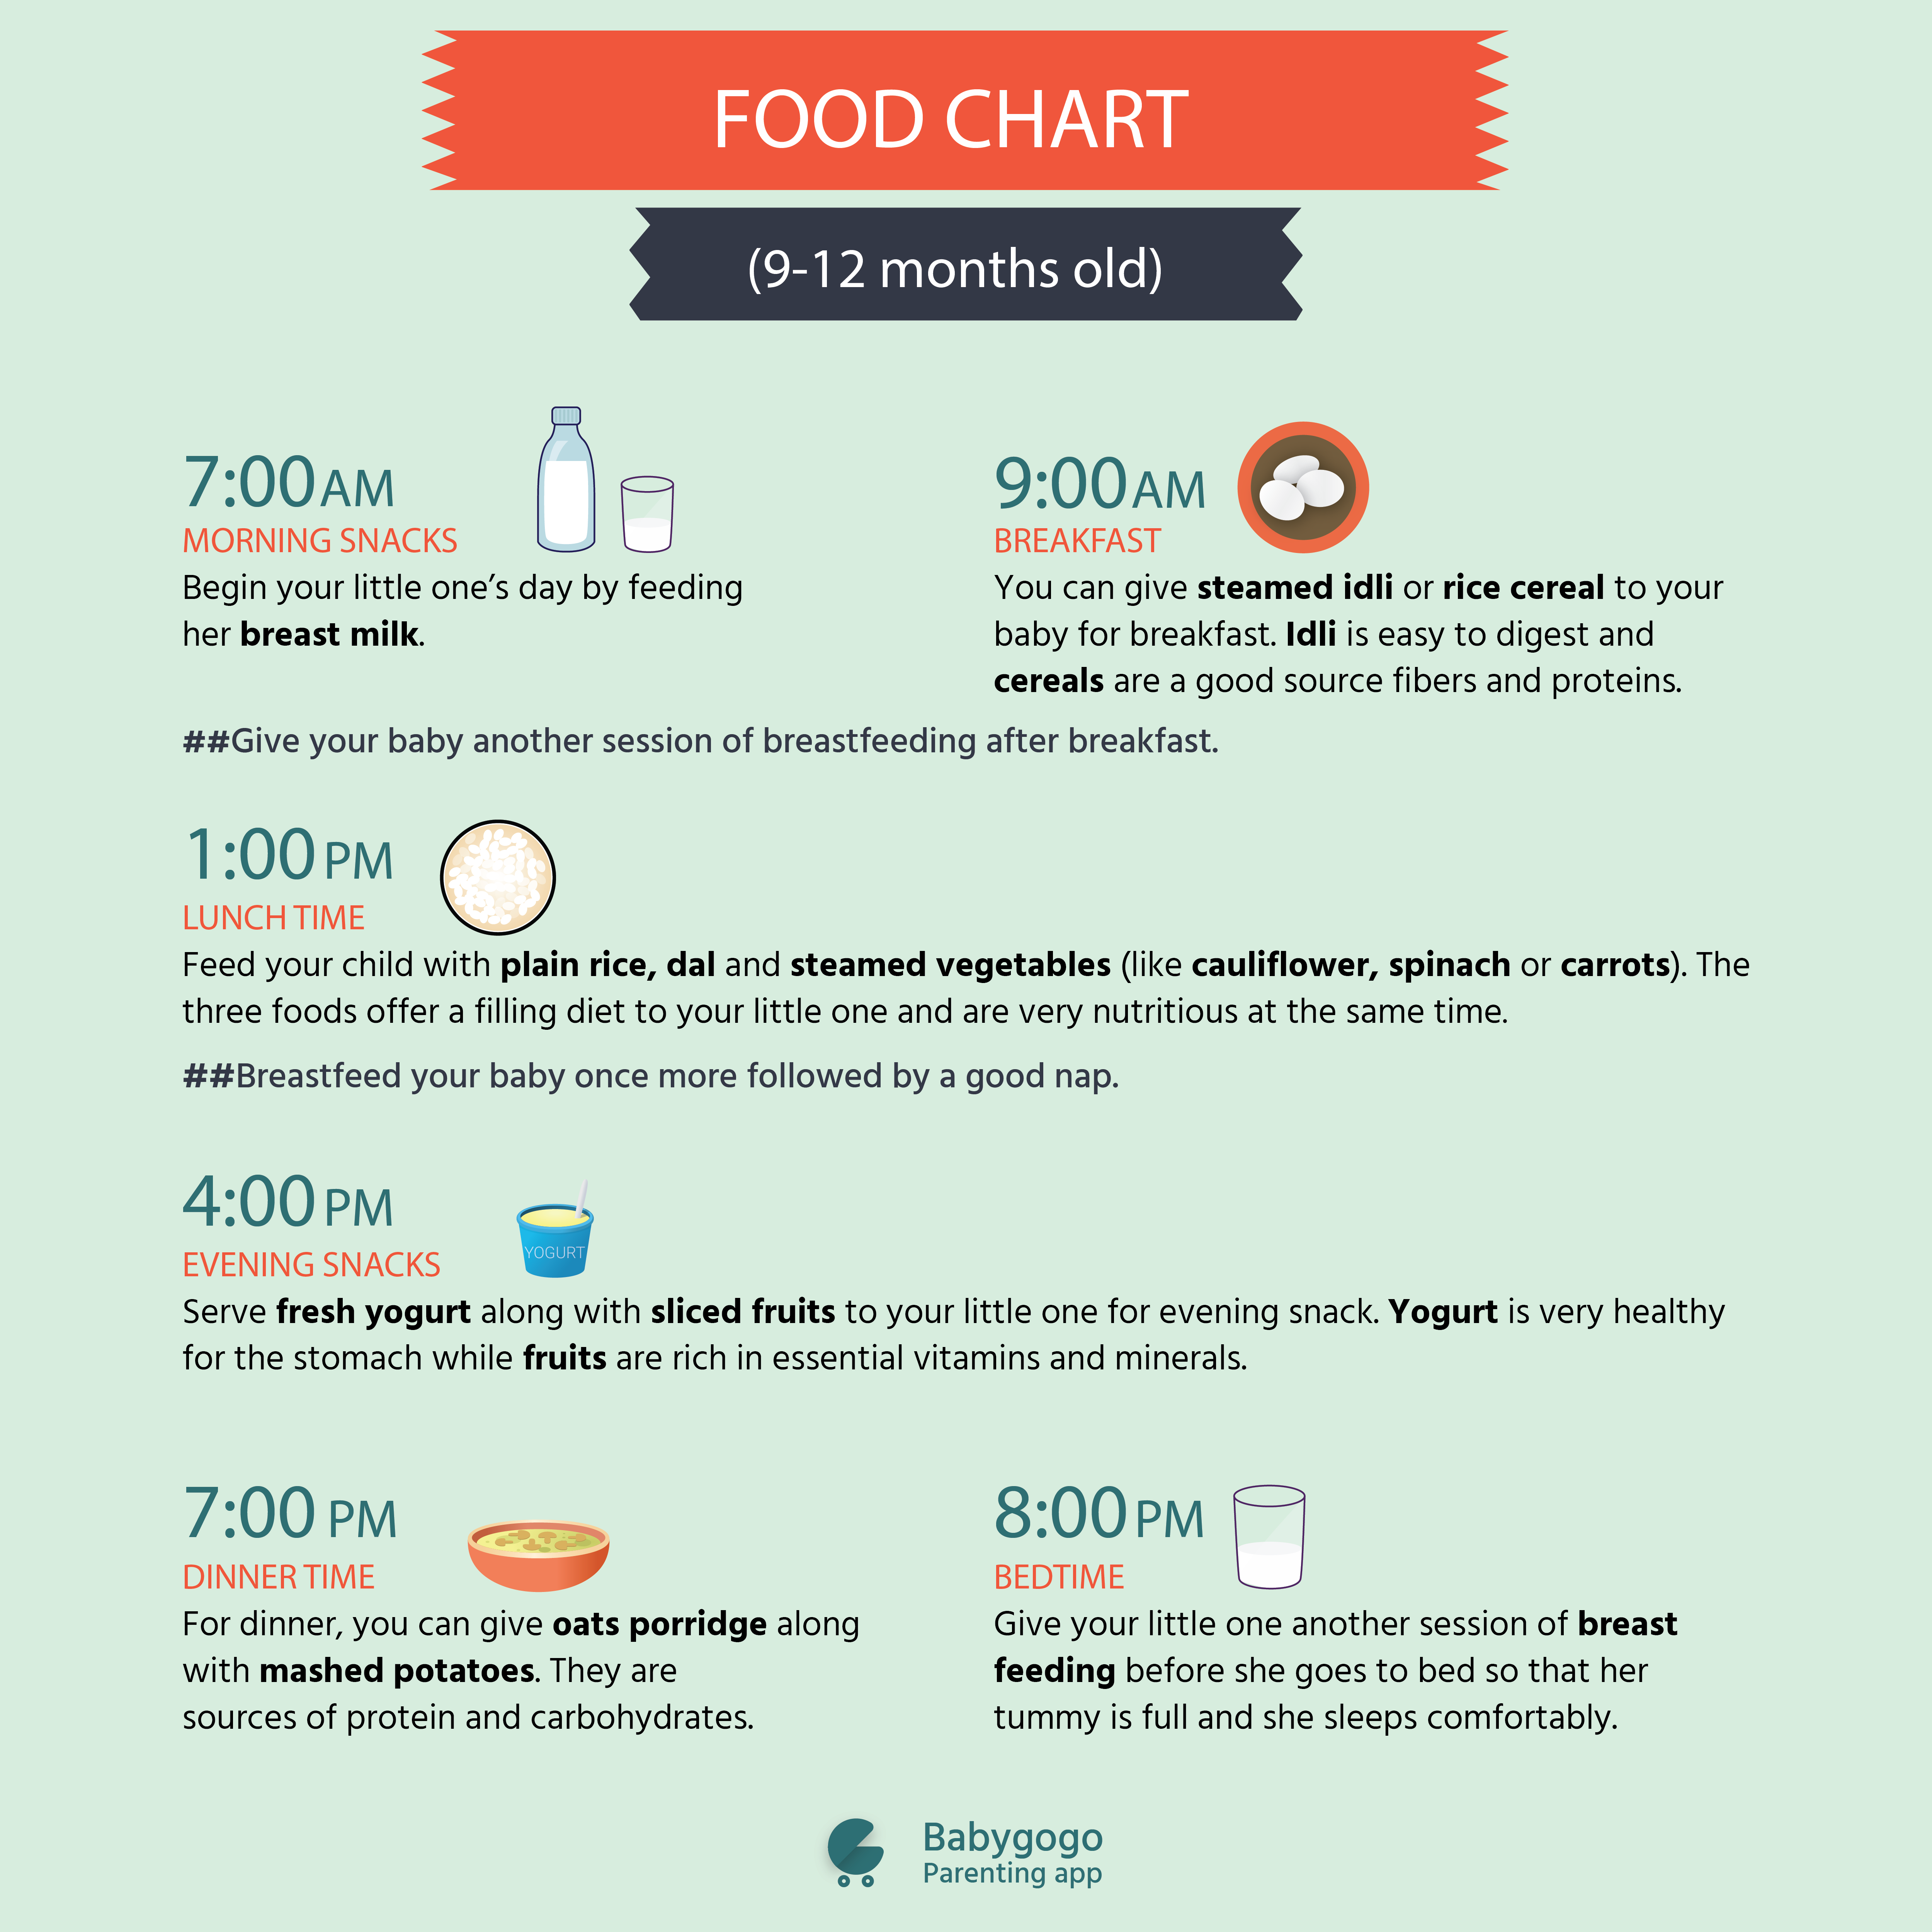 Food chart for your 9 12 months old kid know what to feed and what food chart for your months old kid know what to feed and what time to feed your child nvjuhfo Choice Image